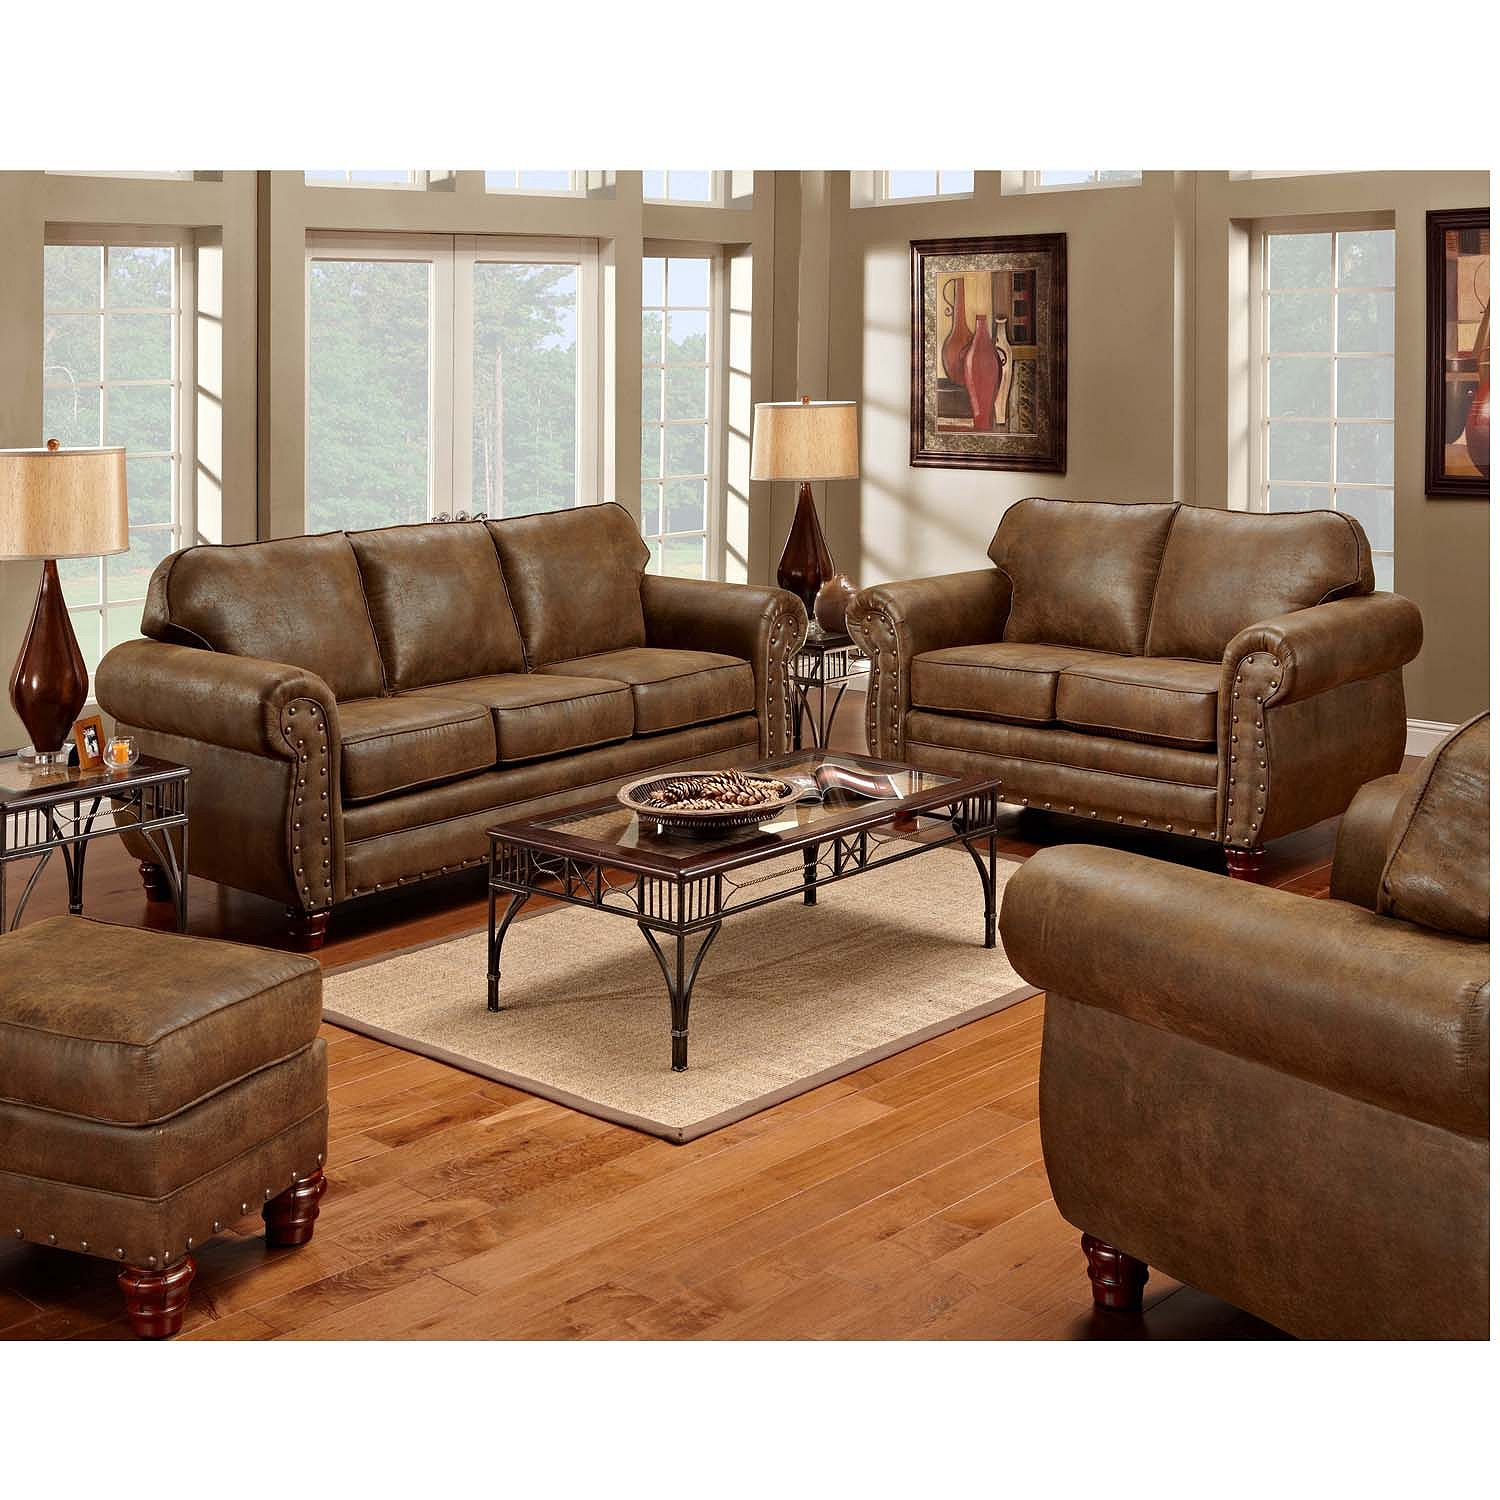 sams club living room furniture sams club furniture living room 18669